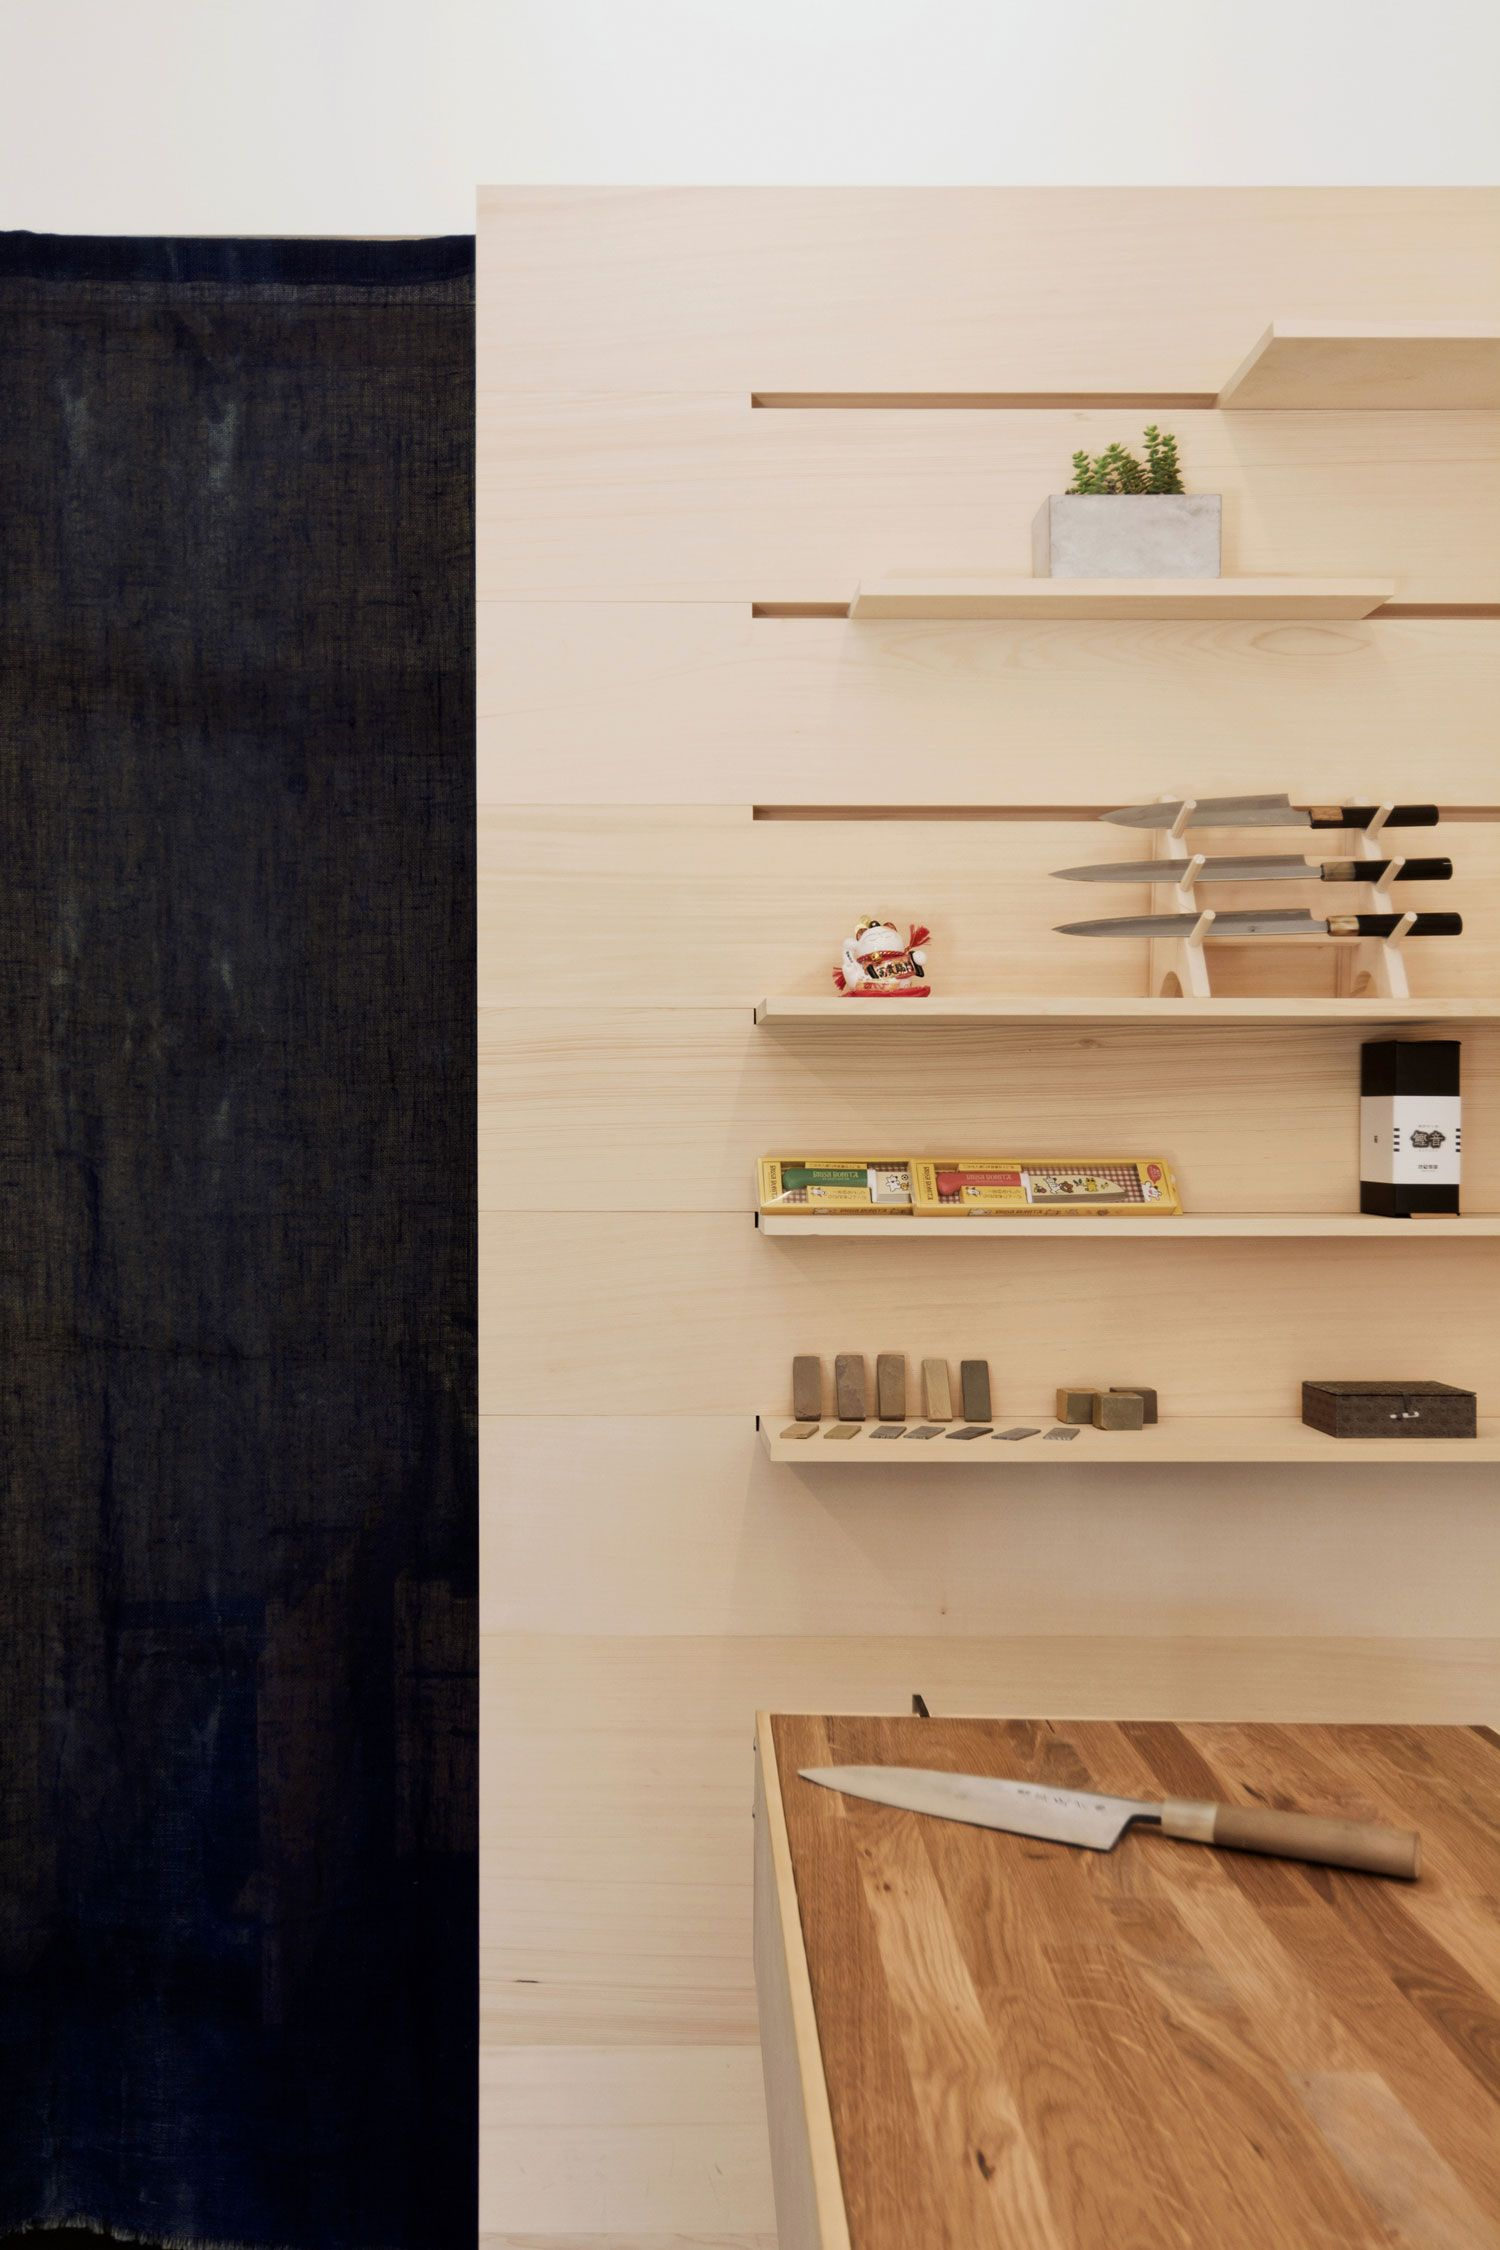 ai om knives shop in vancouver by scott and scott architects